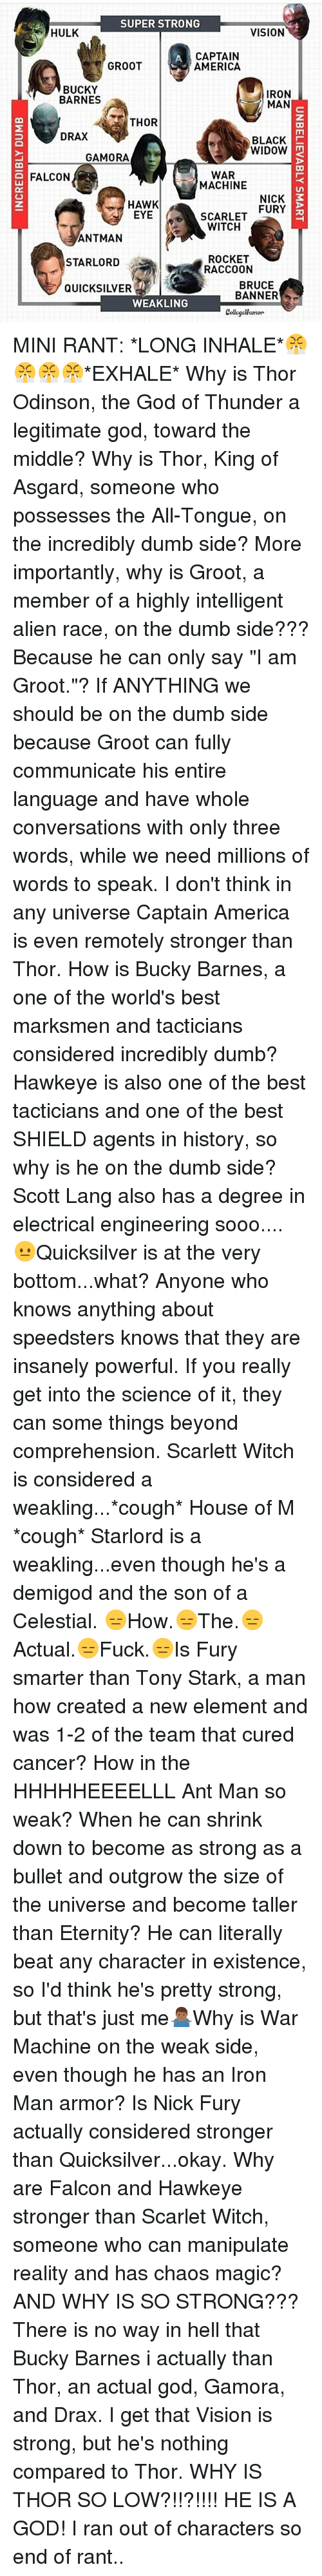 """scarlette: SUPER STRONG  HULK  VISION  CAPTAIN  GROOT  AMERICA  BUCKY  IRON  BARNES  MAN  THOR  DRAX  BLACK  WIDOW  m  GAMORA  WAR  FALCON  MACHINE  NICK  3  HAWK  FURY  EYE  SCARLET  WITCH  ANTMAN  ROCKET  STARLORD  RACCOON  BRUCE  QUICKSILVER  BANNER  WEAKLING  CollegeHumor MINI RANT: *LONG INHALE*😤😤😤😤*EXHALE* Why is Thor Odinson, the God of Thunder a legitimate god, toward the middle? Why is Thor, King of Asgard, someone who possesses the All-Tongue, on the incredibly dumb side? More importantly, why is Groot, a member of a highly intelligent alien race, on the dumb side??? Because he can only say """"I am Groot.""""? If ANYTHING we should be on the dumb side because Groot can fully communicate his entire language and have whole conversations with only three words, while we need millions of words to speak. I don't think in any universe Captain America is even remotely stronger than Thor. How is Bucky Barnes, a one of the world's best marksmen and tacticians considered incredibly dumb? Hawkeye is also one of the best tacticians and one of the best SHIELD agents in history, so why is he on the dumb side? Scott Lang also has a degree in electrical engineering sooo.... 😐Quicksilver is at the very bottom...what? Anyone who knows anything about speedsters knows that they are insanely powerful. If you really get into the science of it, they can some things beyond comprehension. Scarlett Witch is considered a weakling...*cough* House of M *cough* Starlord is a weakling...even though he's a demigod and the son of a Celestial. 😑How.😑The.😑Actual.😑Fuck.😑Is Fury smarter than Tony Stark, a man how created a new element and was 1-2 of the team that cured cancer? How in the HHHHHEEEELLL Ant Man so weak? When he can shrink down to become as strong as a bullet and outgrow the size of the universe and become taller than Eternity? He can literally beat any character in existence, so I'd think he's pretty strong, but that's just me🤷🏾♂️Why is War Machine on the weak side, even though he has"""